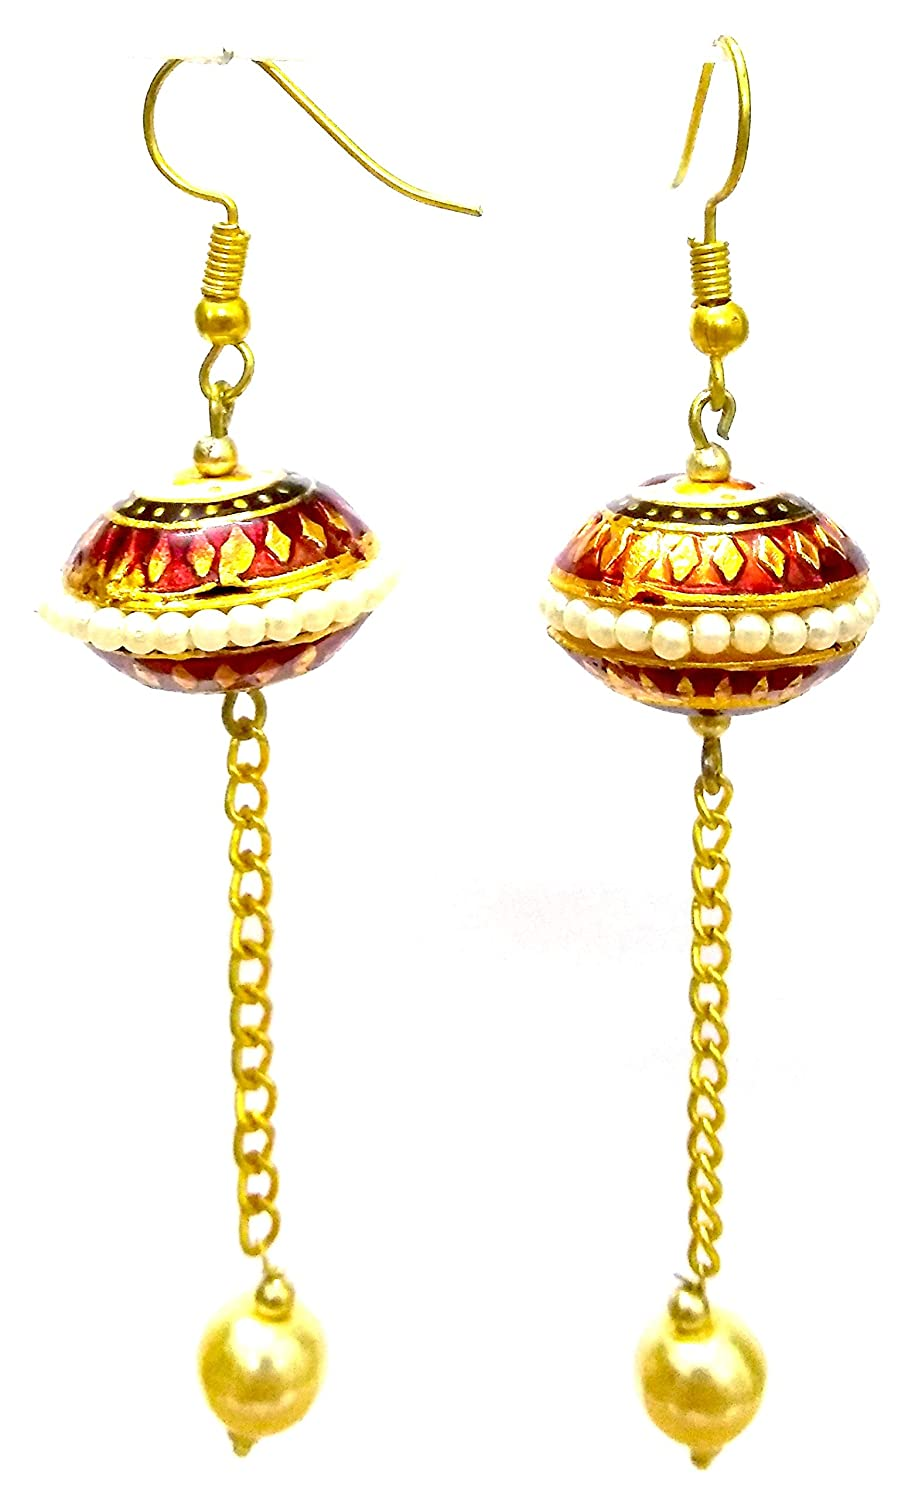 DESI HAWKER Meenakari Minakari Hand Painted Made Earring Bali Jhumki Jhumka Jewelry Drop Dangle Chandelier Long Chain NI-291